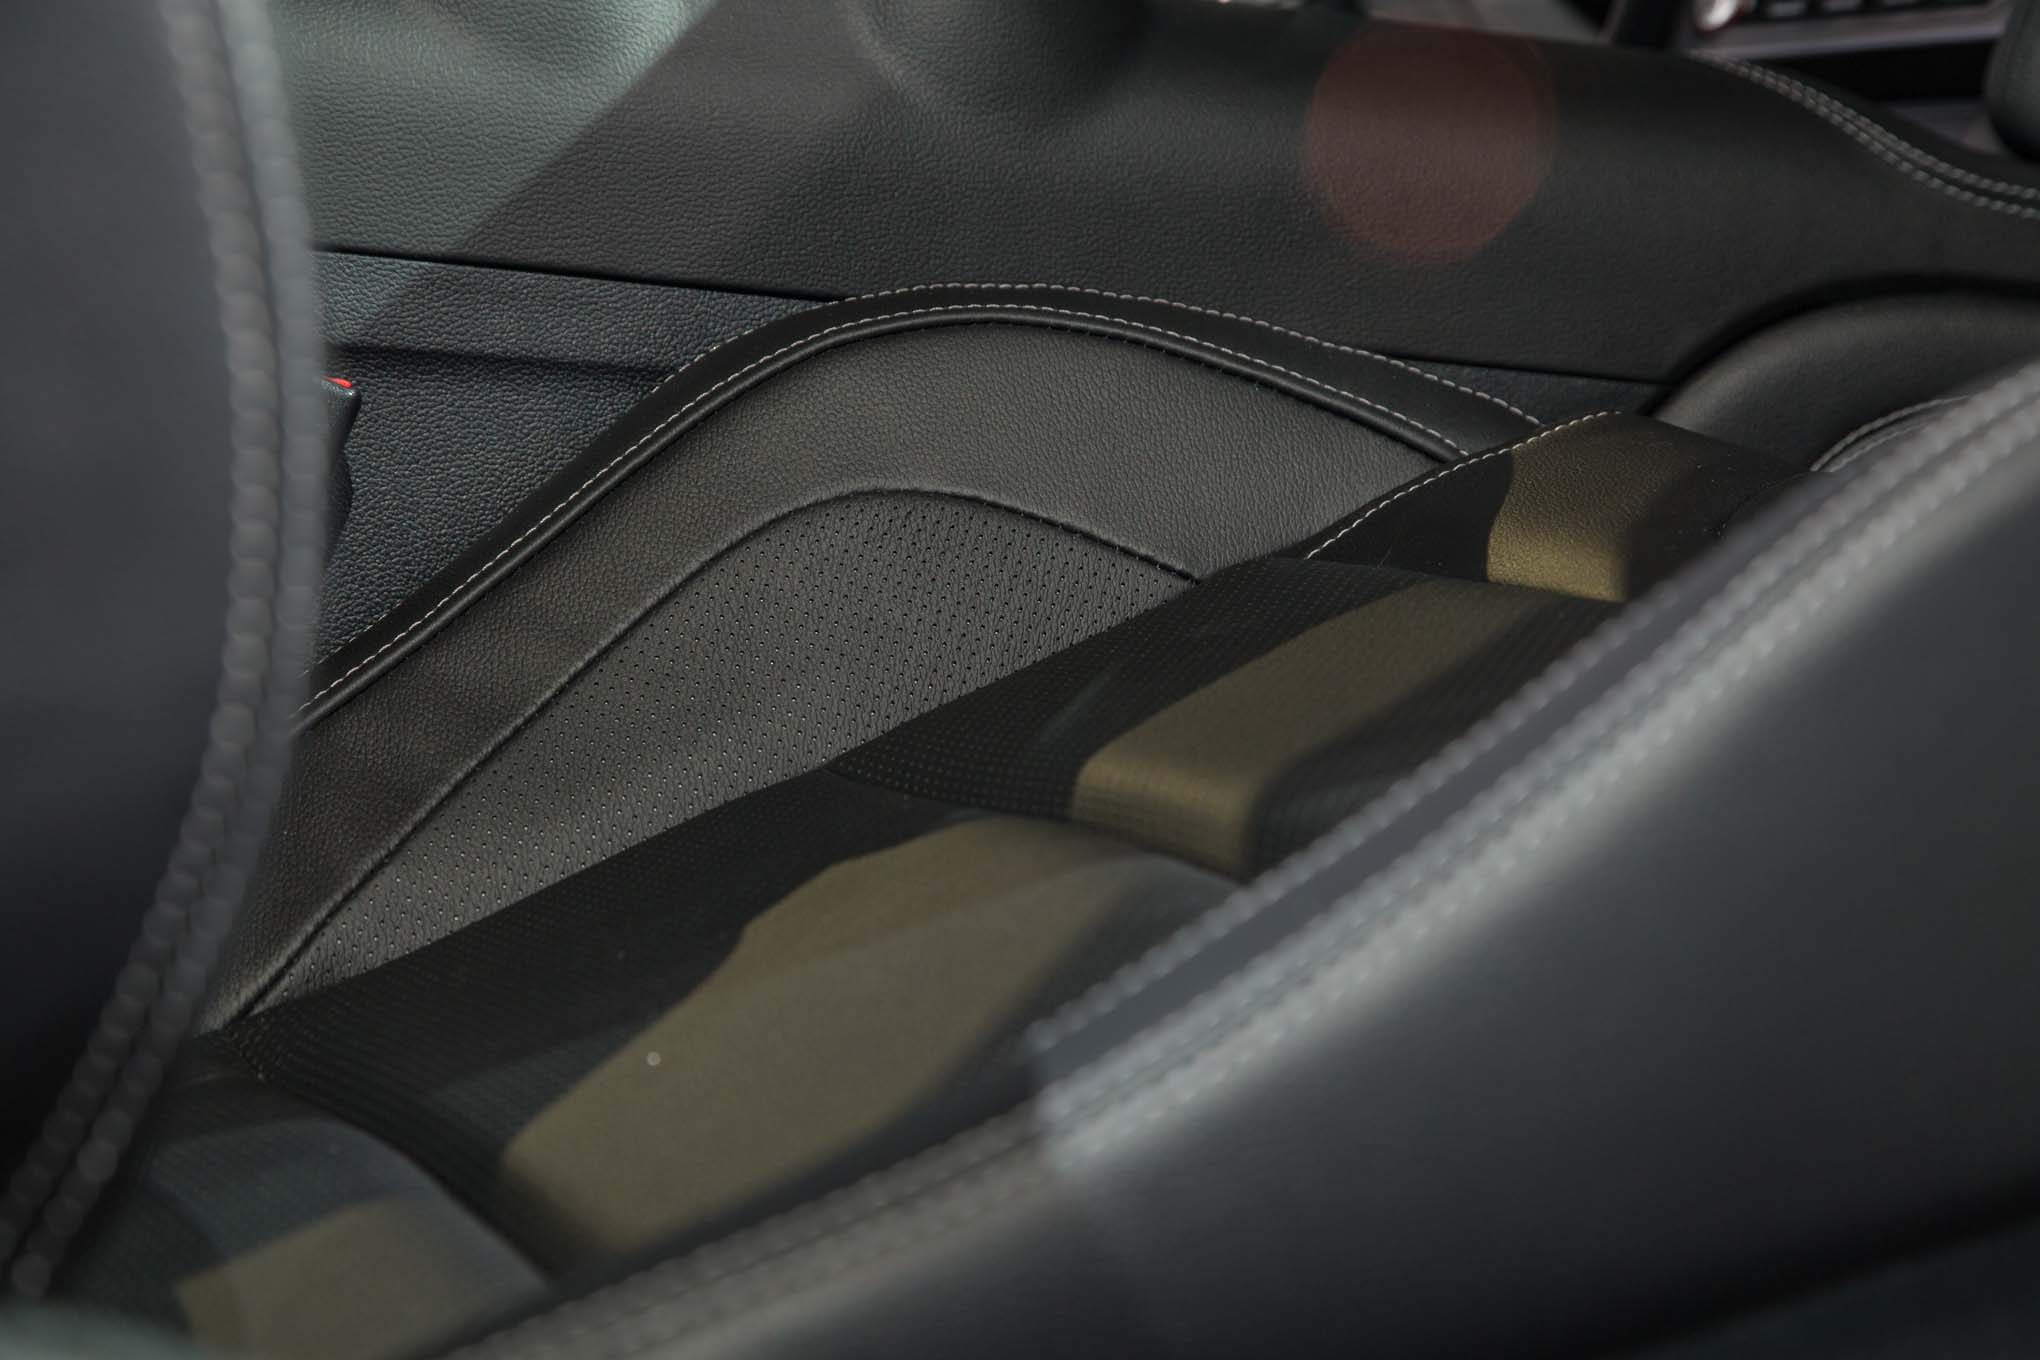 2018-Ford-Mustang-GT-interior-leather-seats